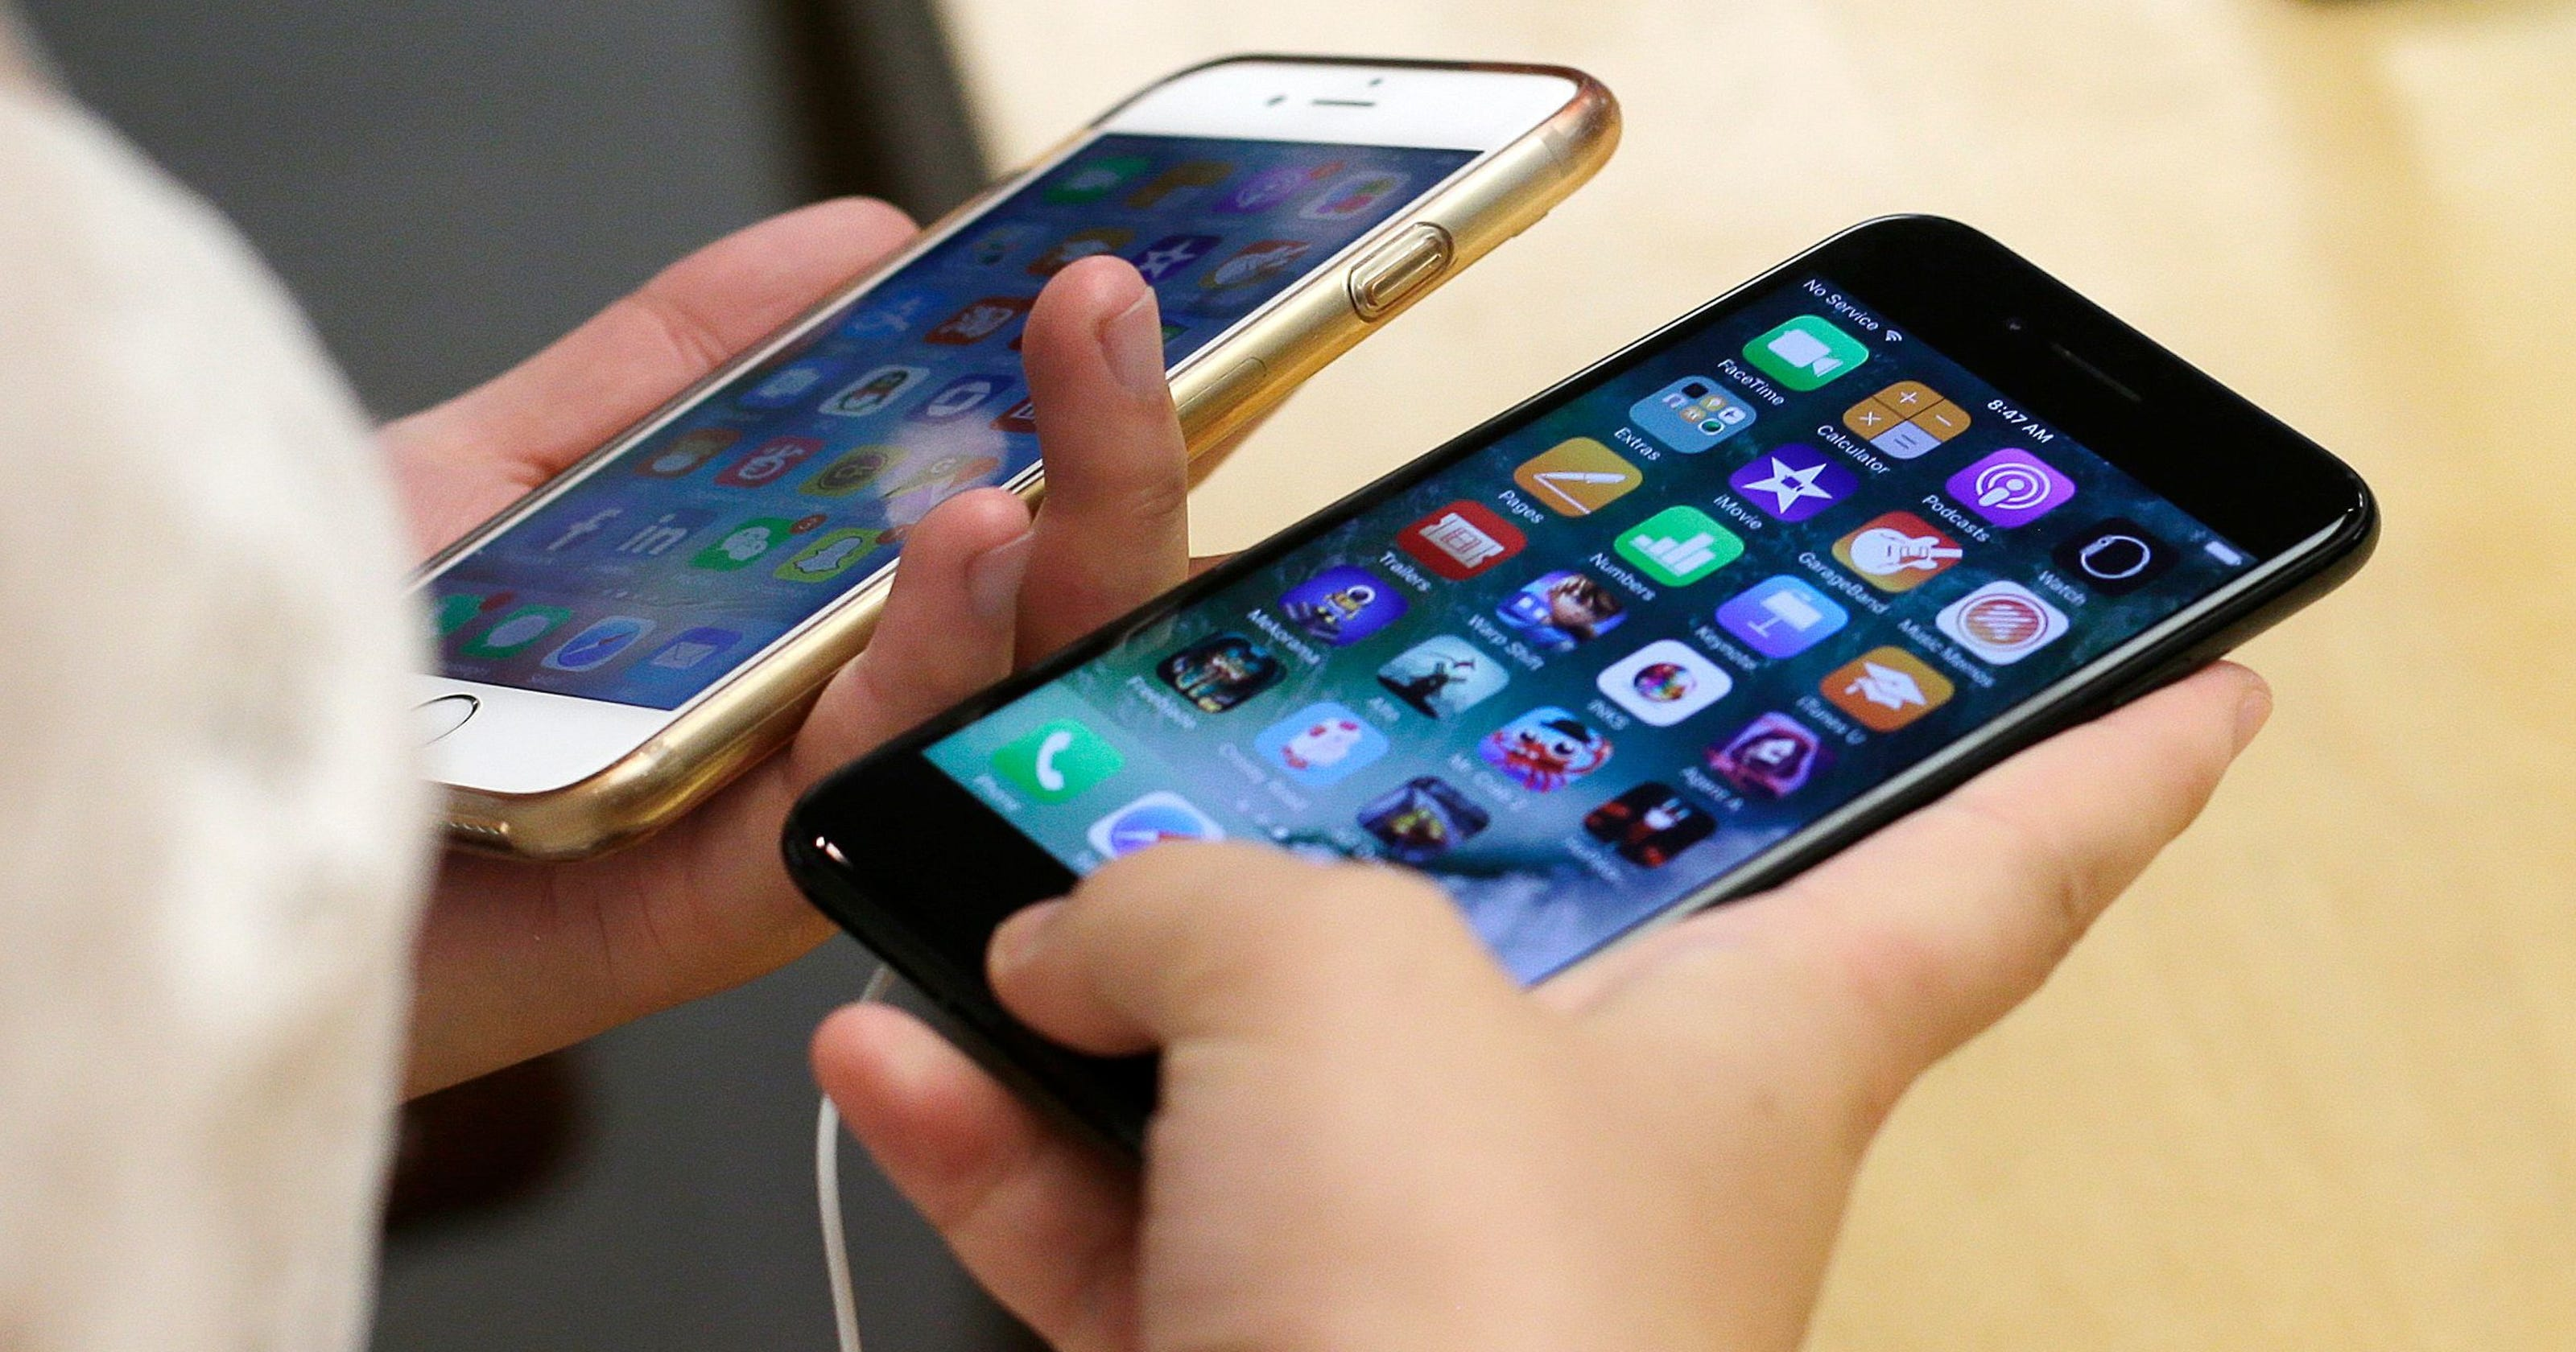 Apple iPhone: How to switch from Android to iPhone, and what